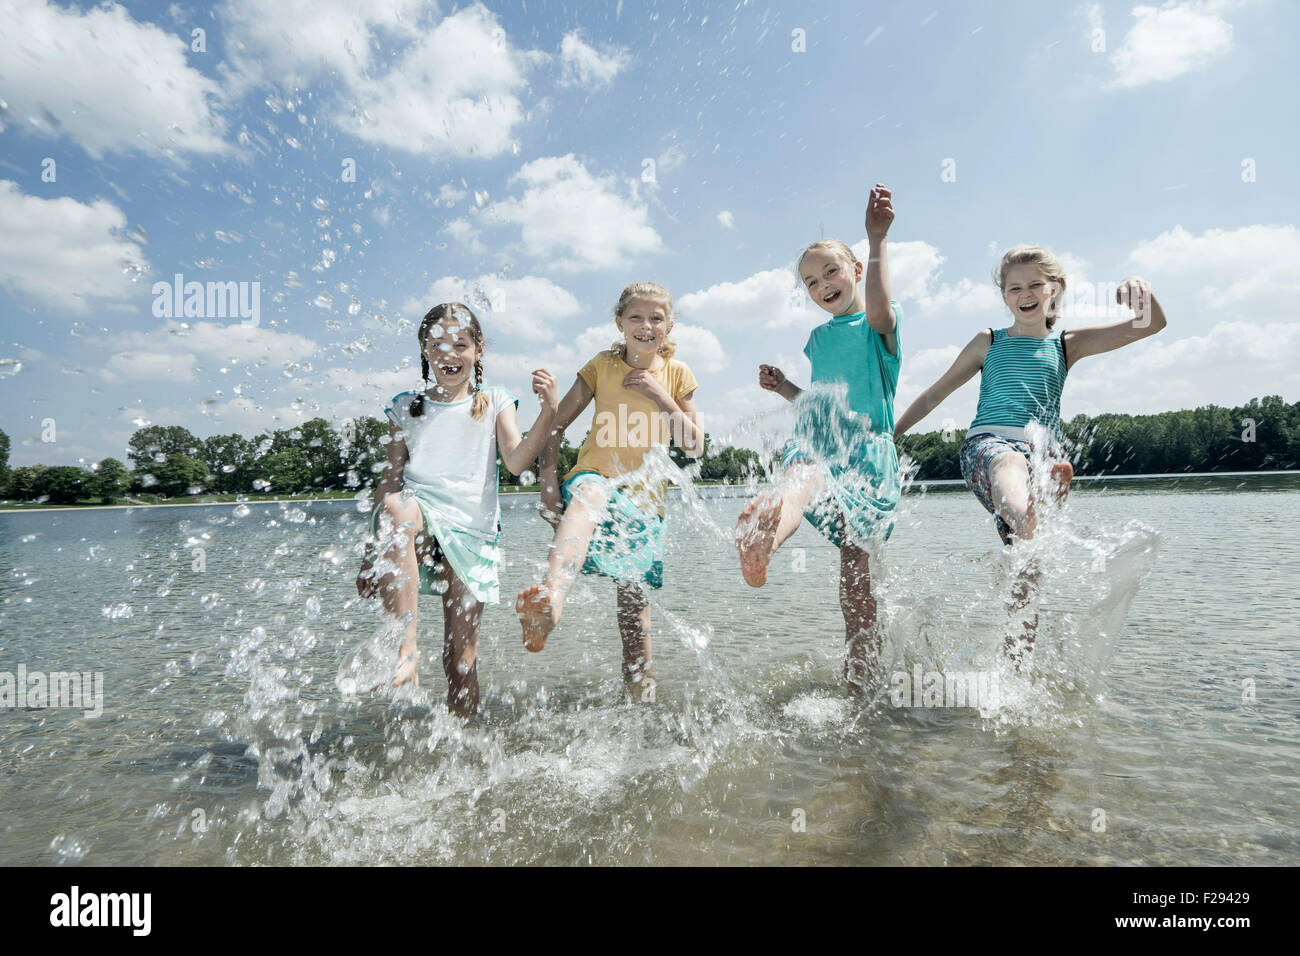 Group of friends splashing water in the lake, Bavaria, Germany Stock Photo